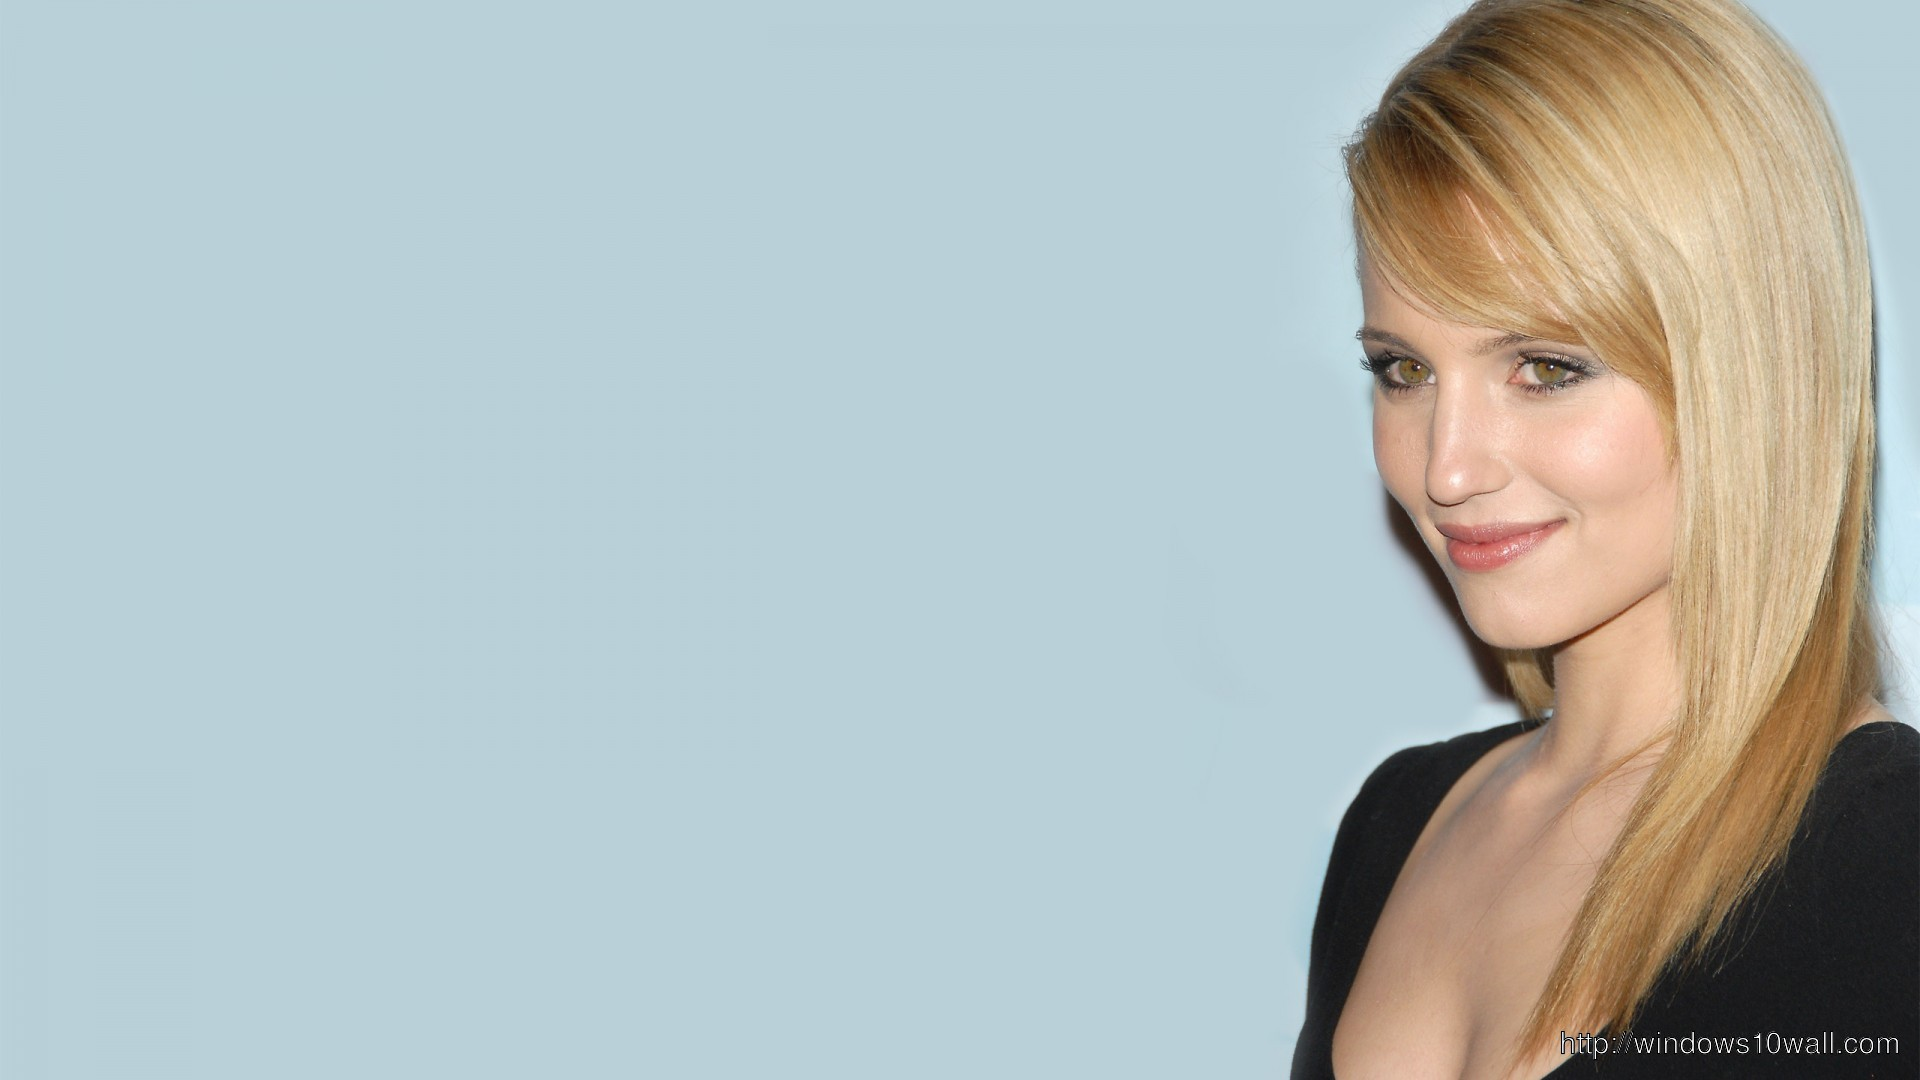 dianna-agron-wallpaper-desktop